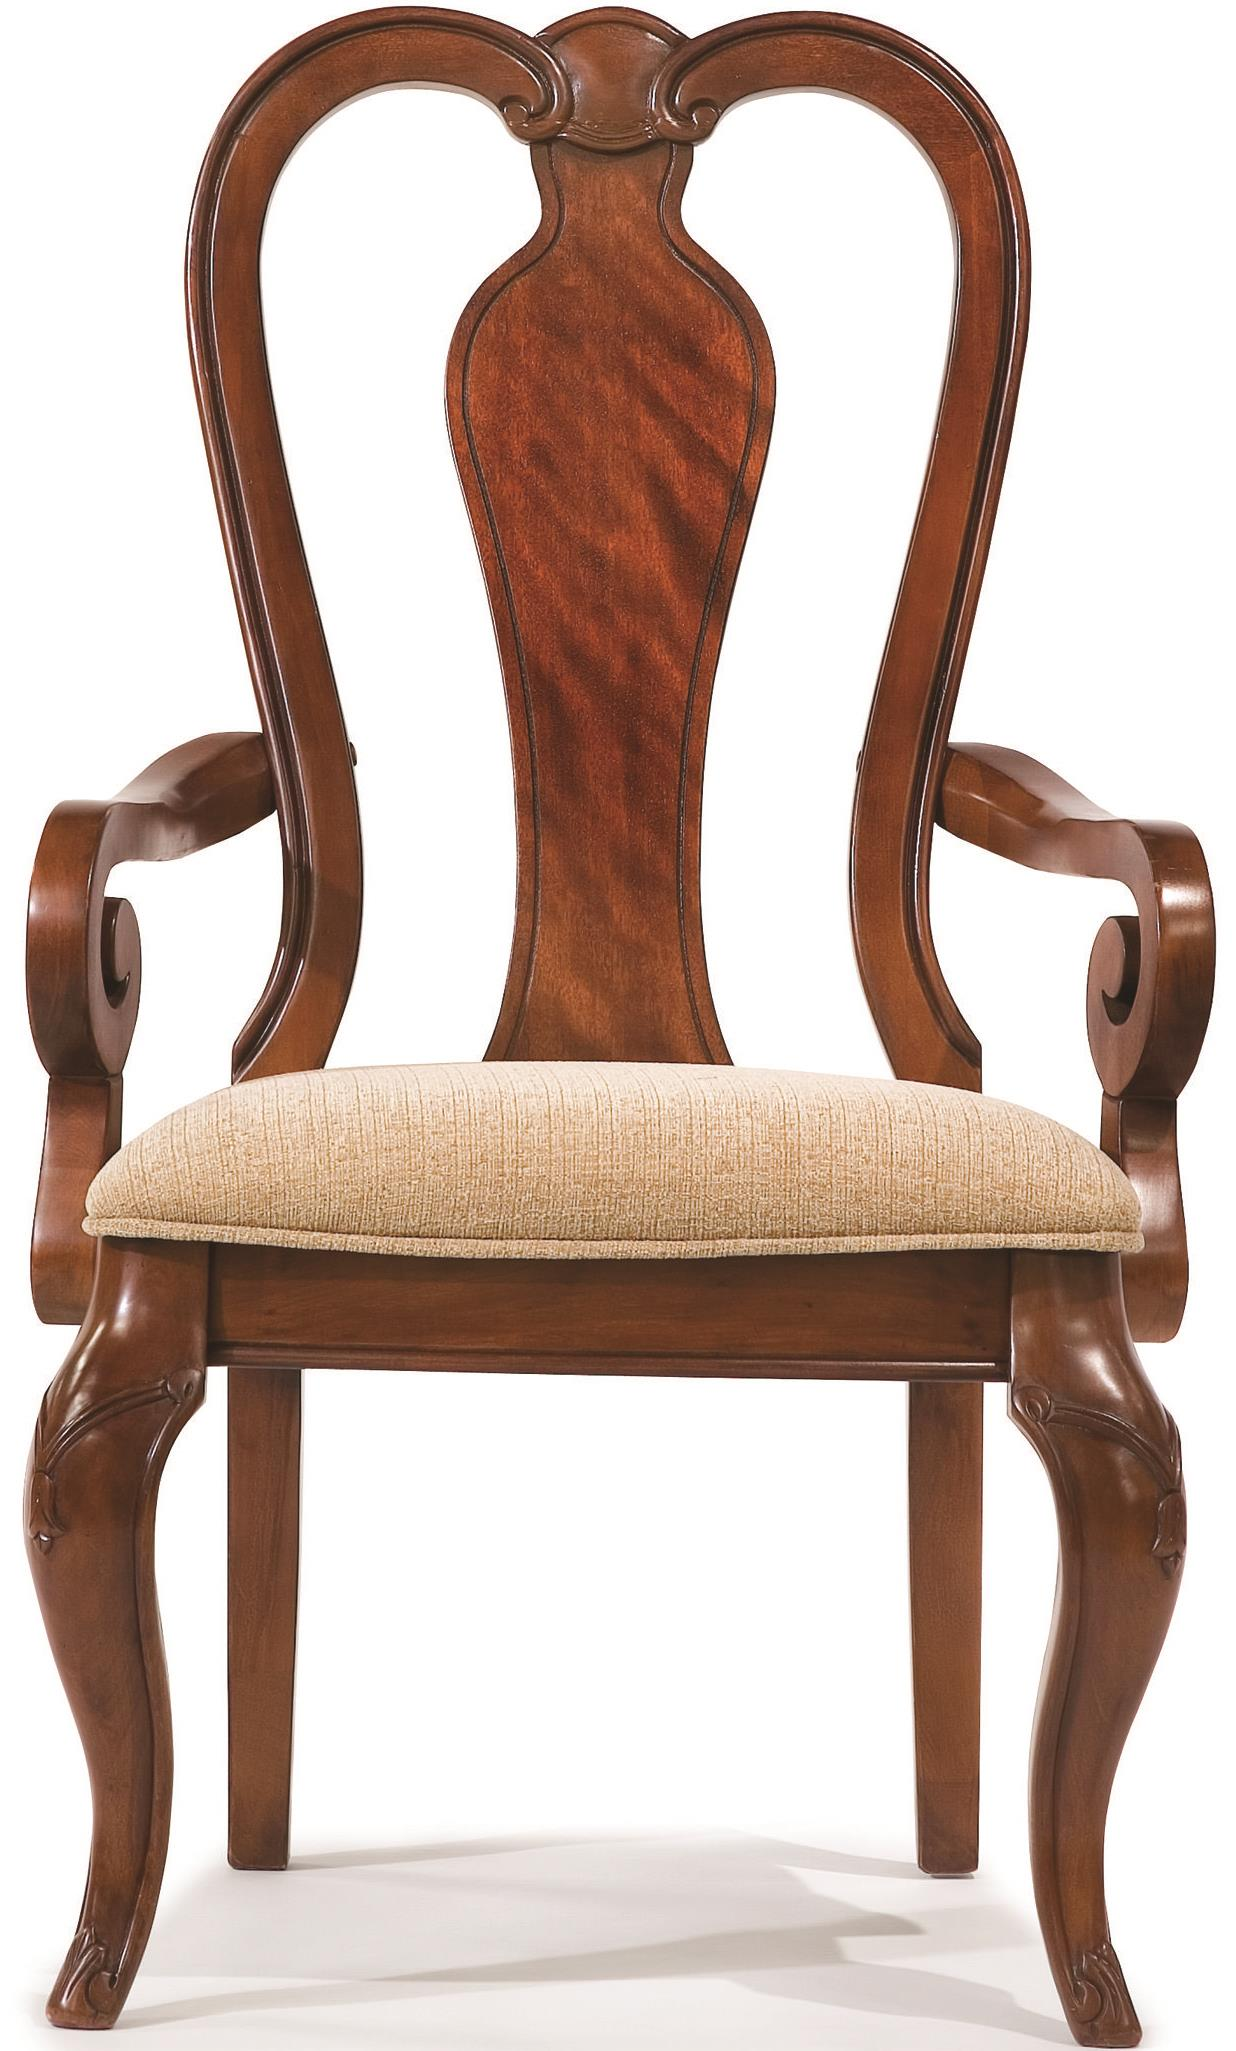 Legacy Classic Eternity Queen Anne Arm Chair - Item Number: 9180-141 KD